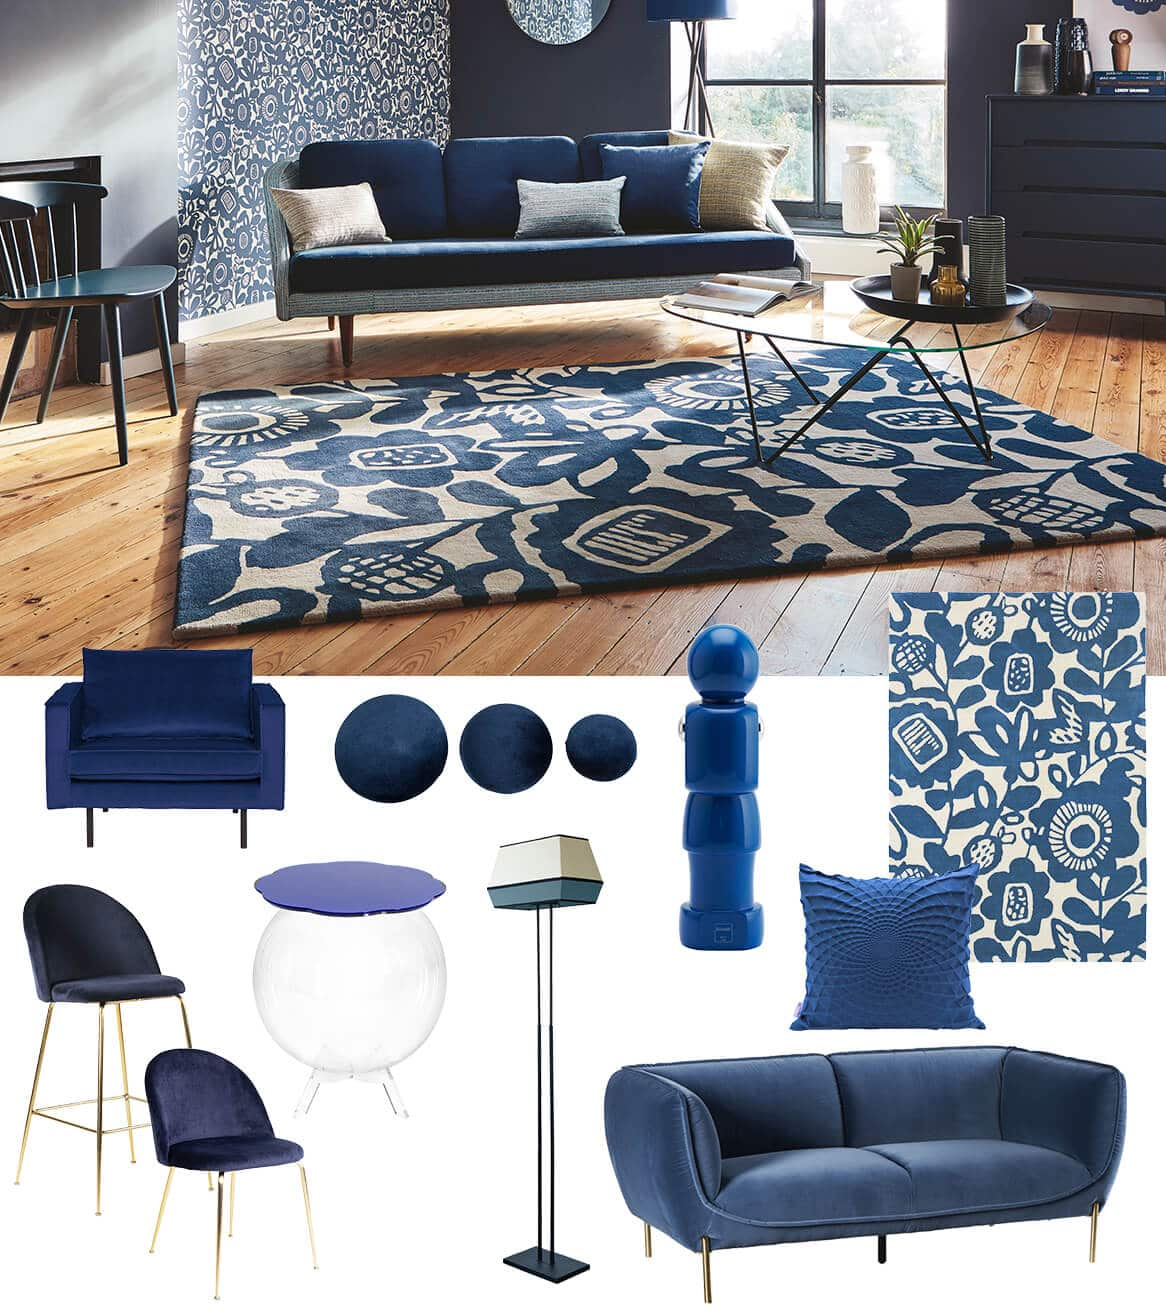 selection design classic blue pantone 2020 zeeblog zeeloft